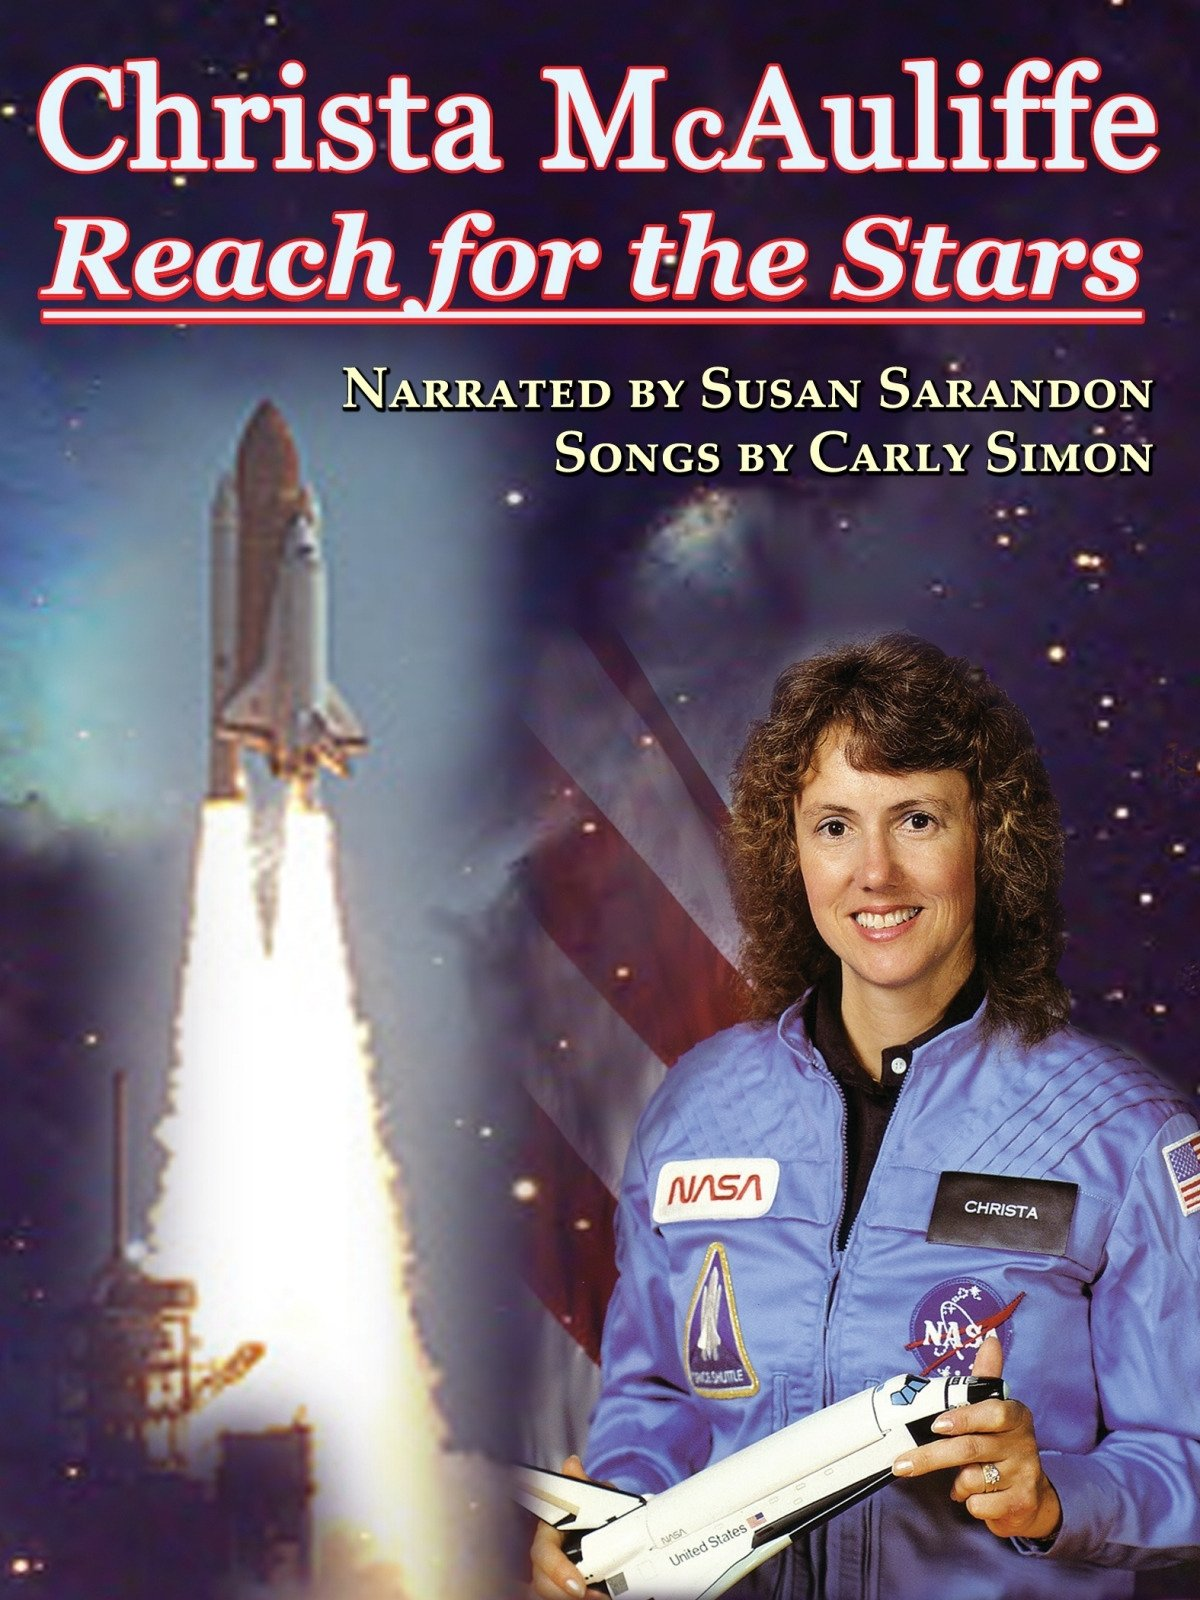 Christa McAuliffe: Reach for the Stars